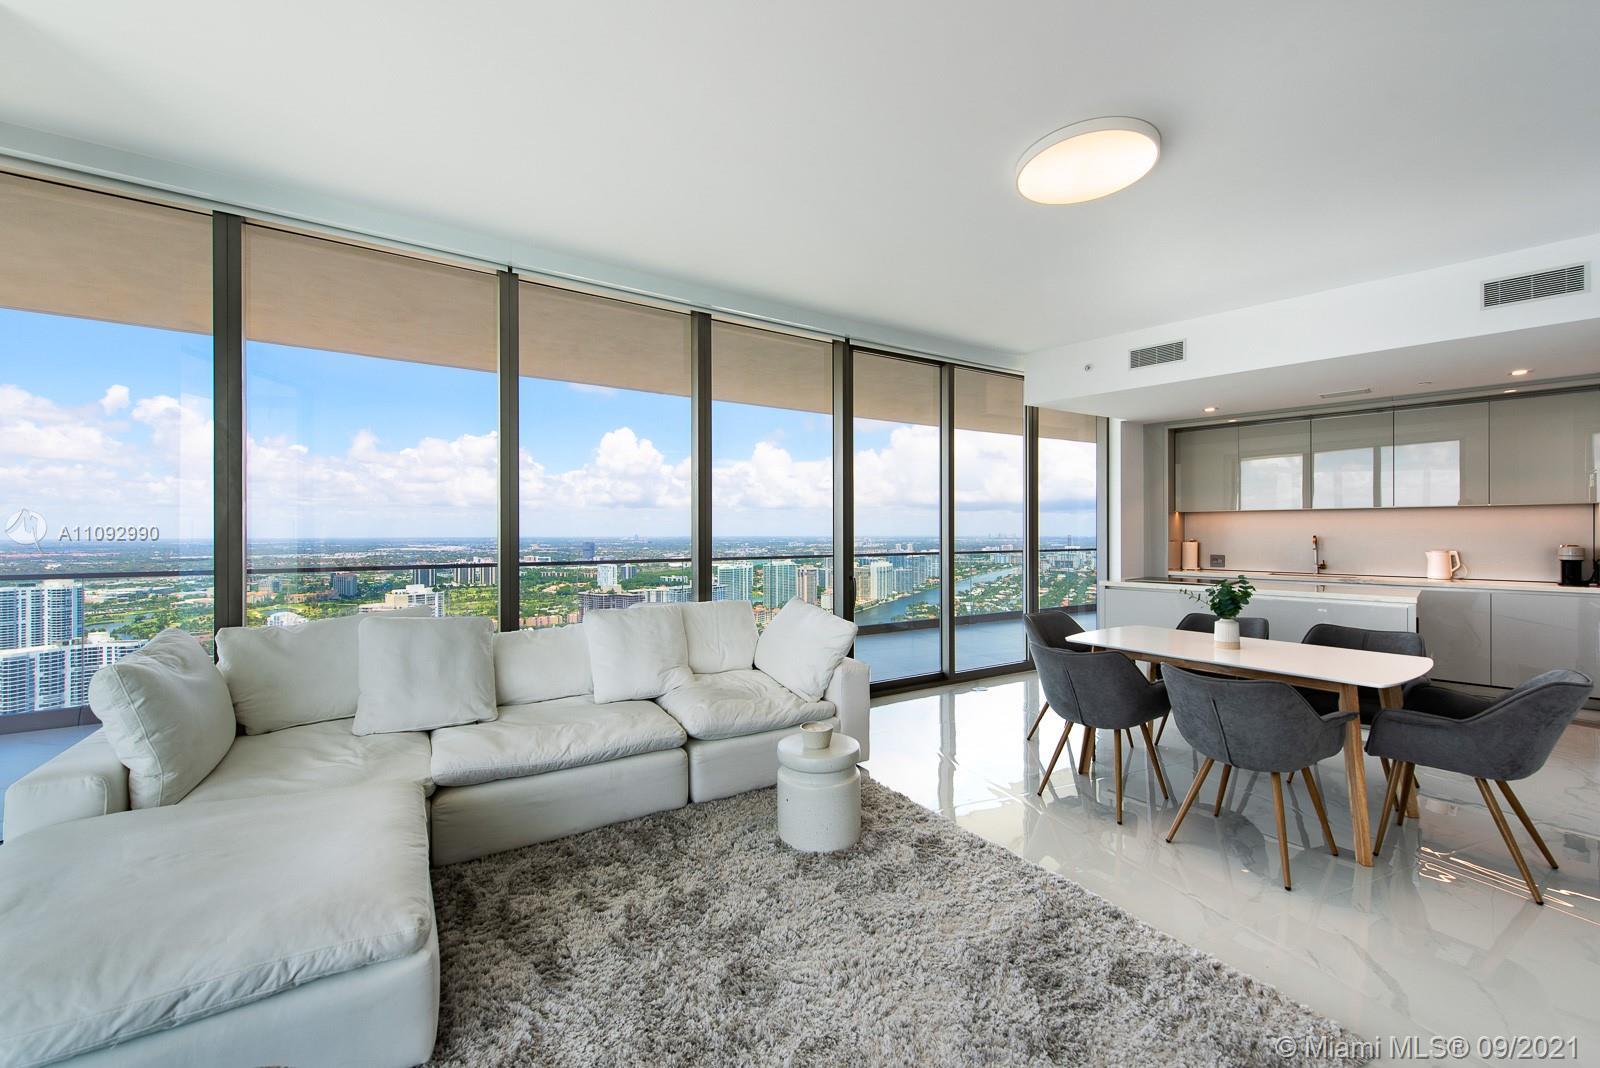 Stunning 2 bedrooms & 2 bathrooms residence with breathtaking views of the ocean and city skyline. N